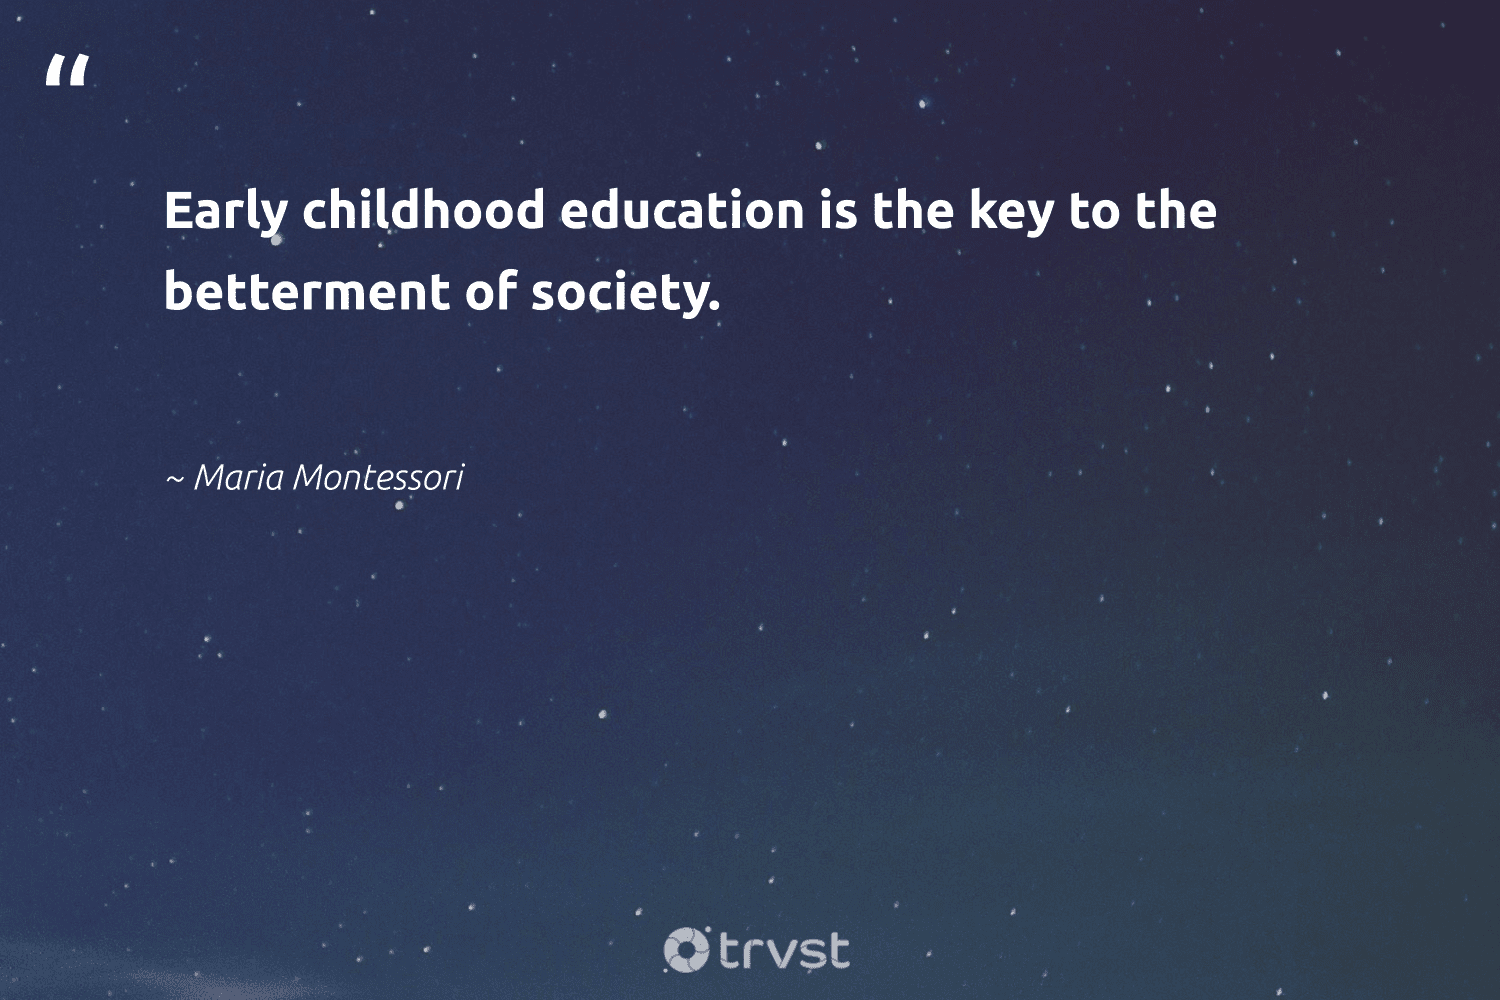 """""""Early childhood education is the key to the betterment of society.""""  - Maria Montessori #trvst #quotes #society #education #strongercommunities #impact #makeadifference #ecoconscious #socialchange #dogood #giveback #takeaction"""